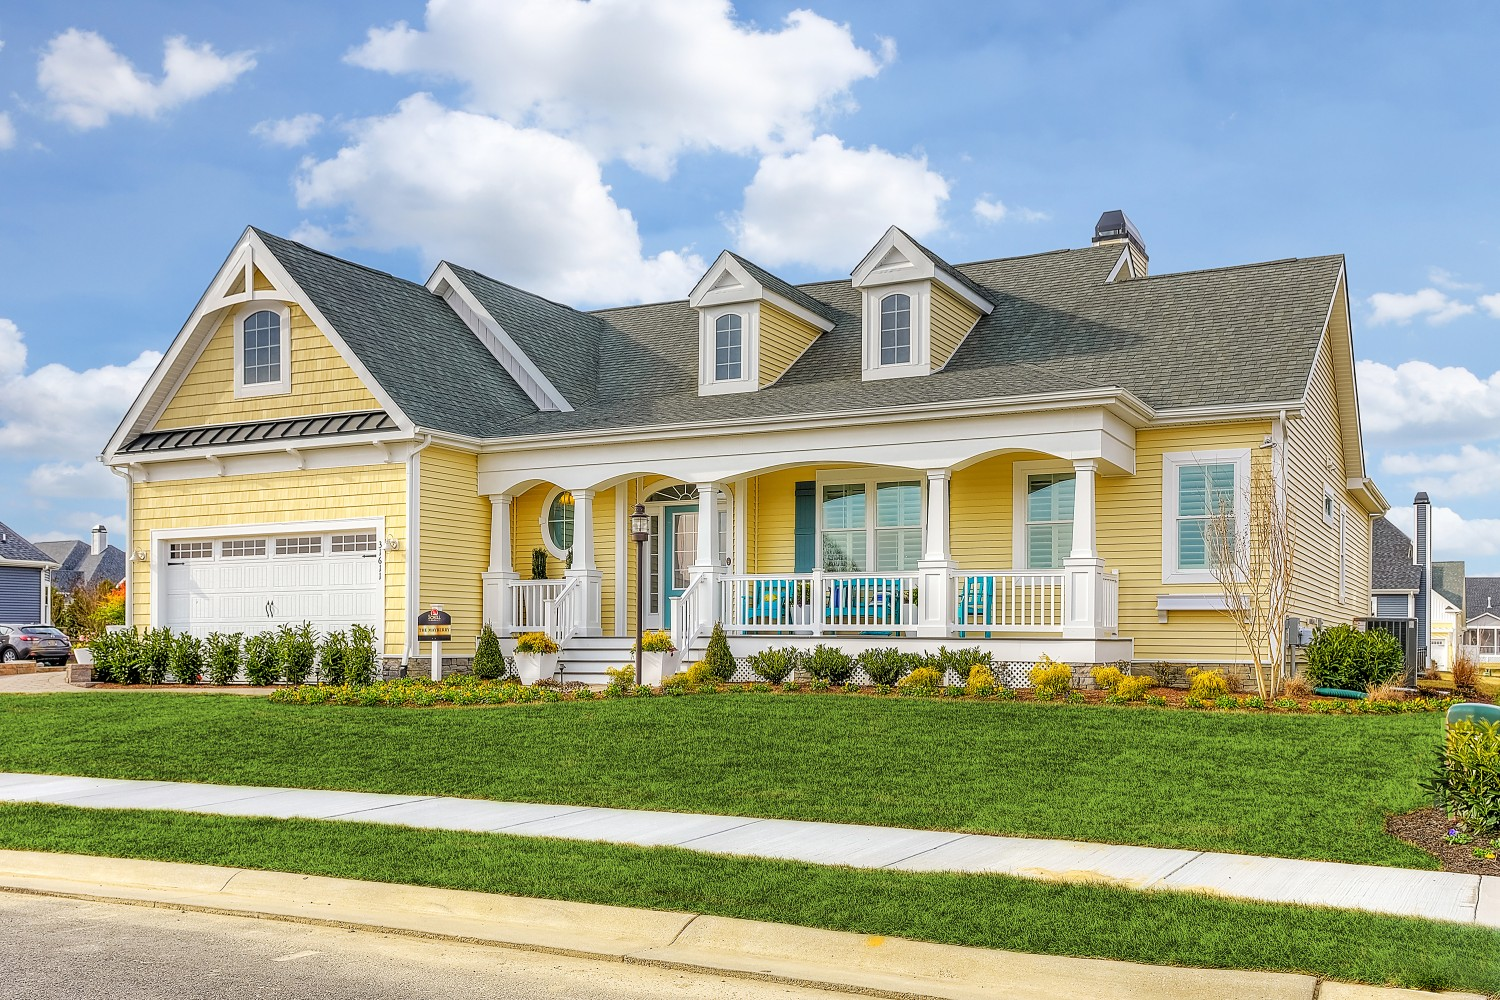 The mayberry model home coastal club schell brothers for Houses in houston with basements